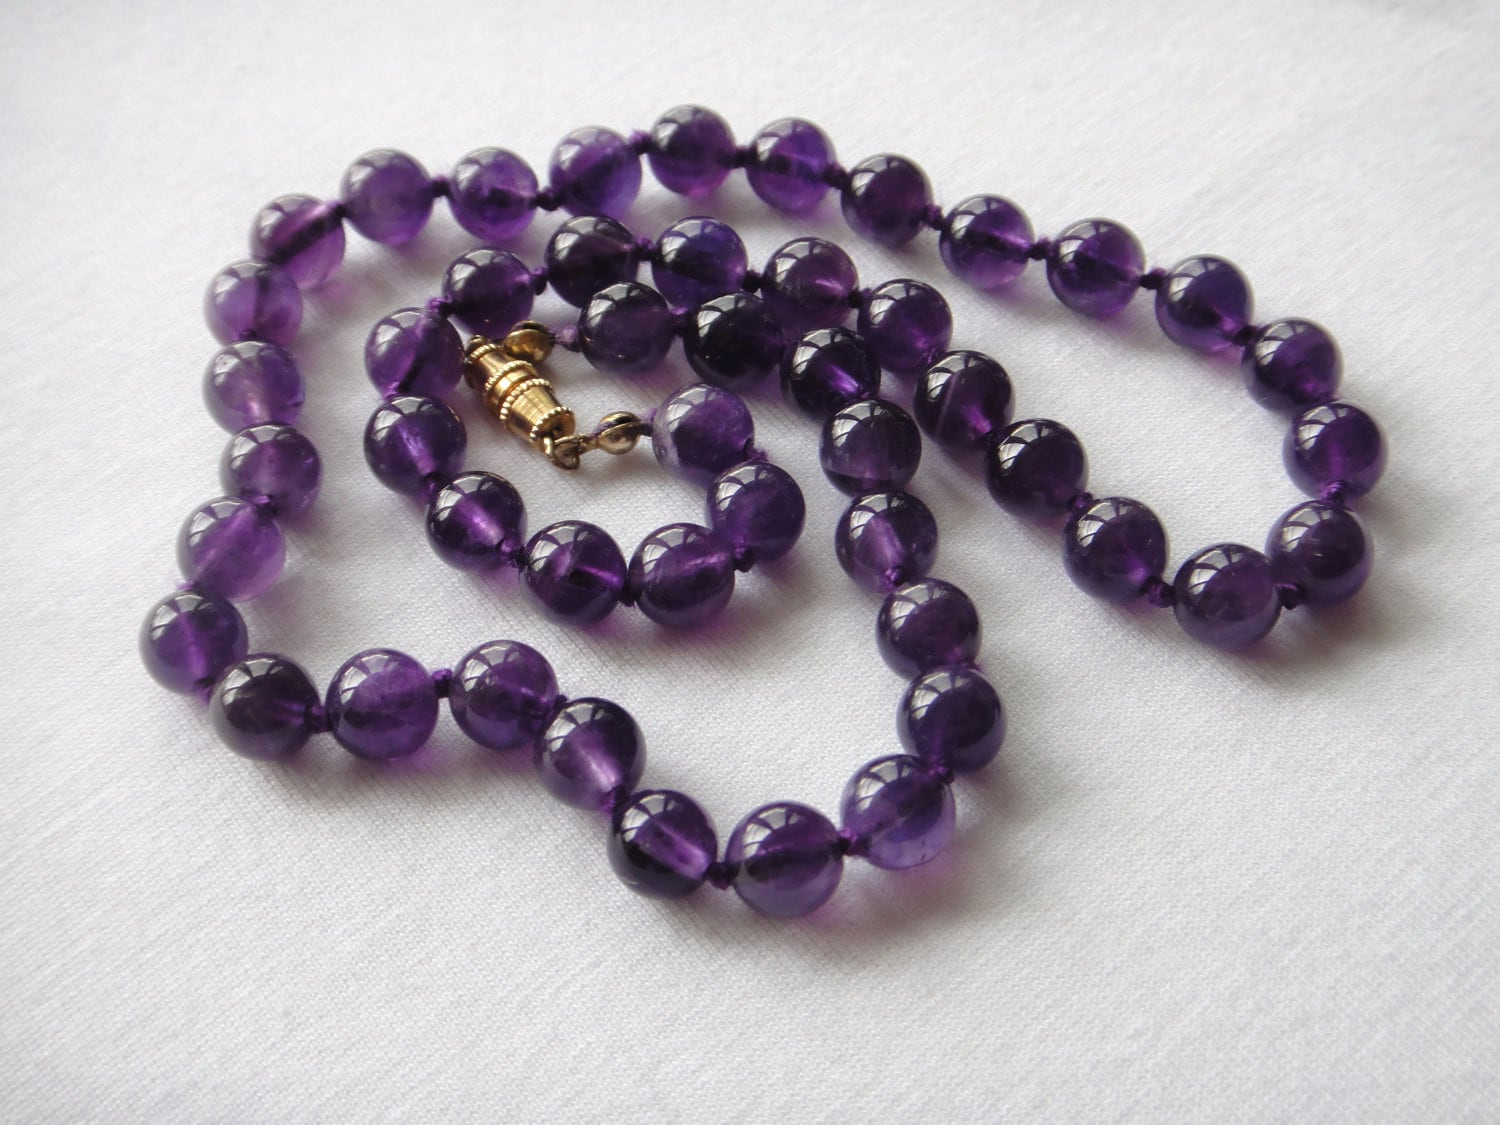 amethyst stone necklace - photo #22